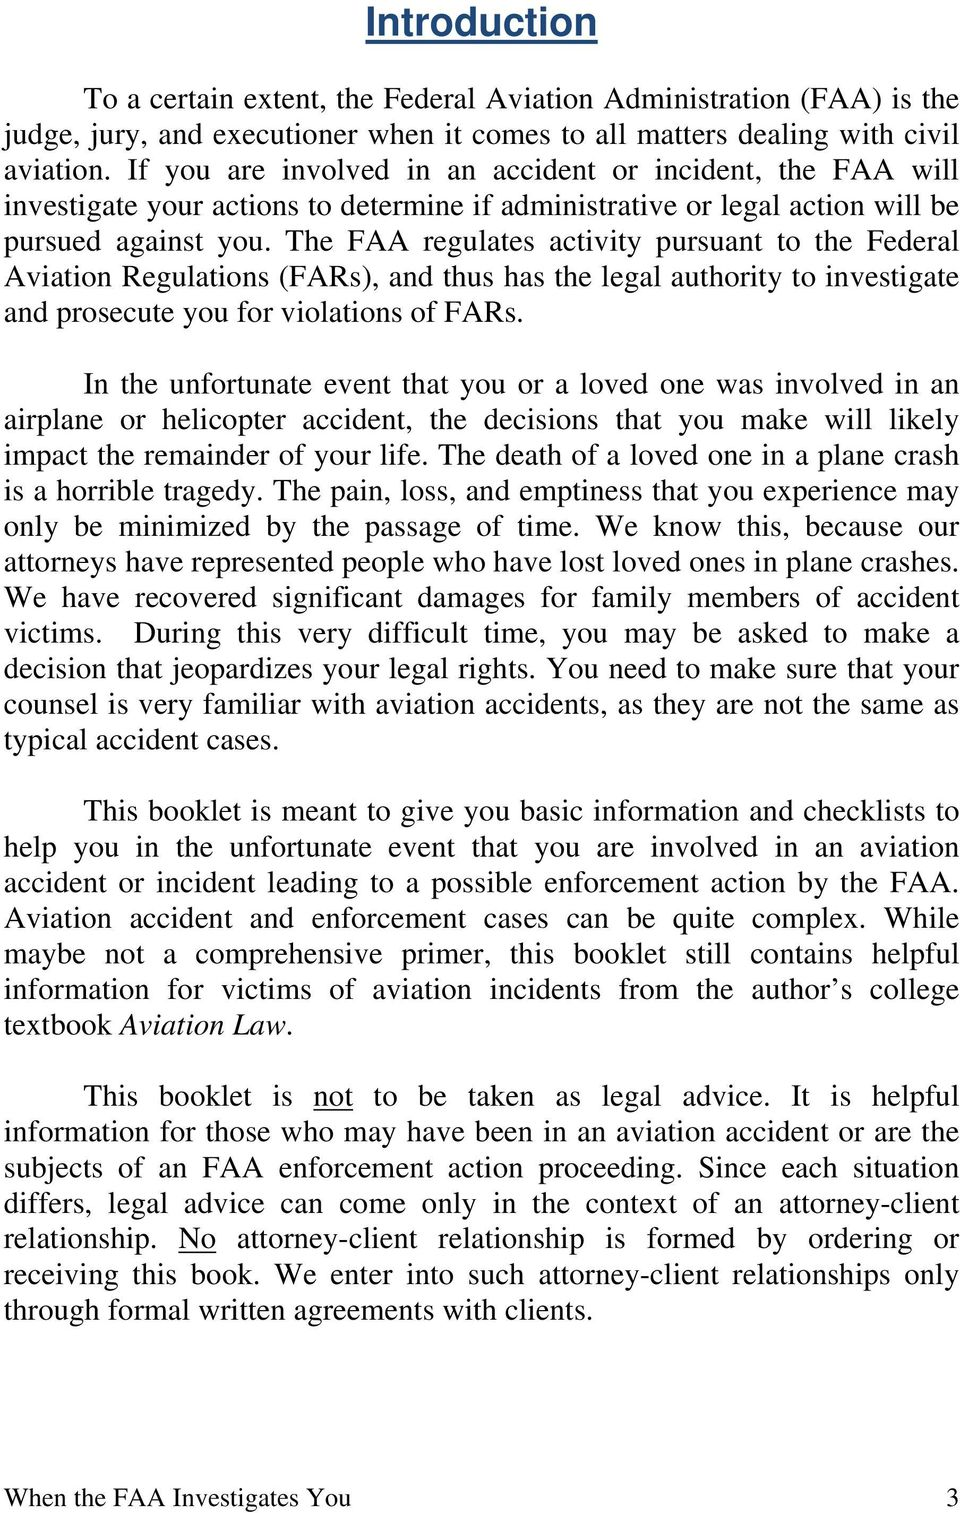 The FAA regulates activity pursuant to the Federal Aviation Regulations (FARs), and thus has the legal authority to investigate and prosecute you for violations of FARs.